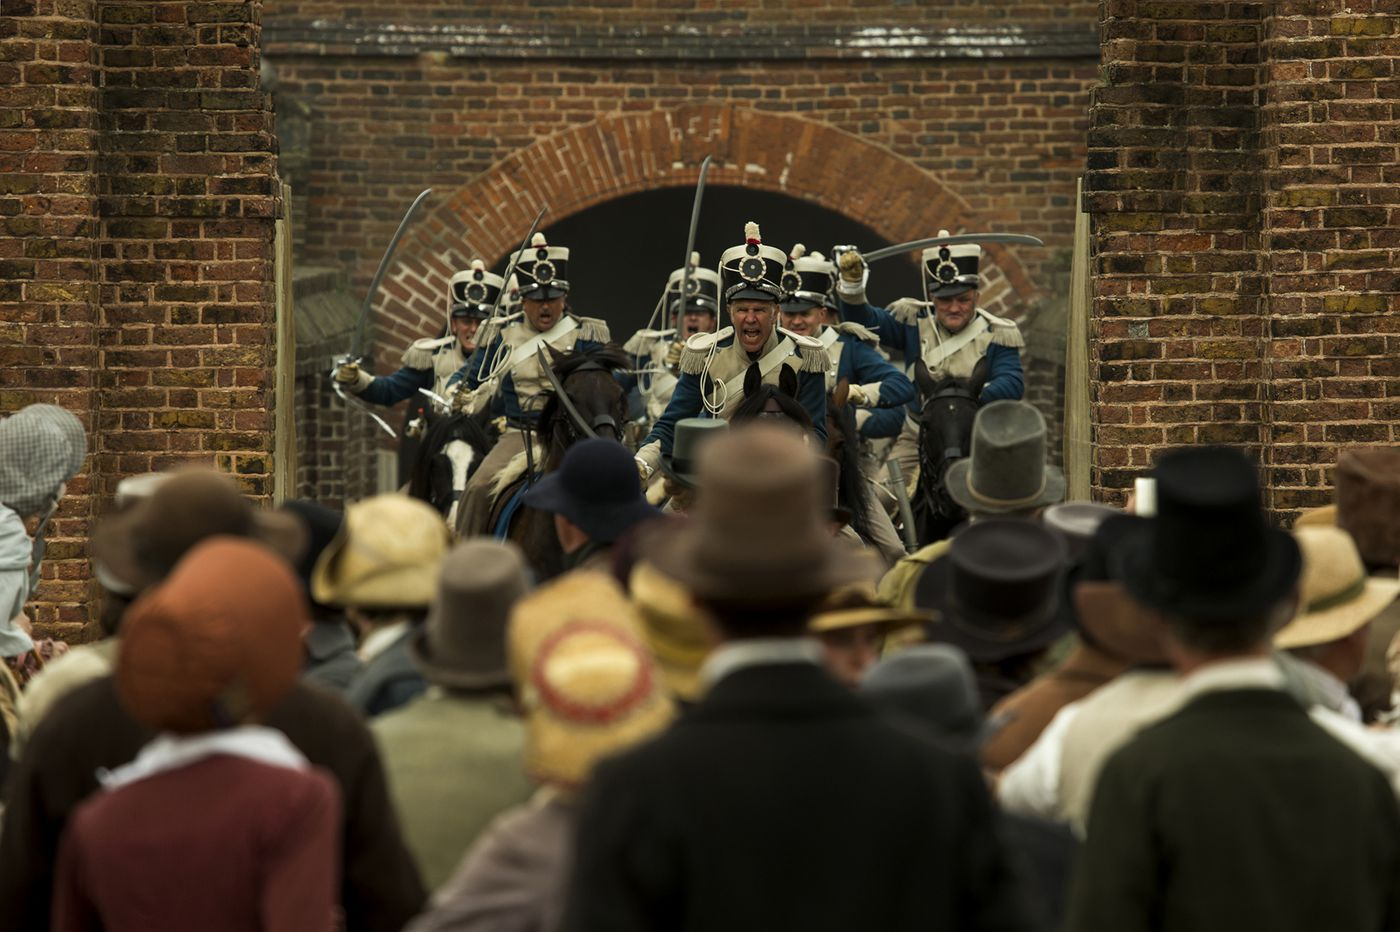 Mike Leigh revisits a UK labor massacre in 'Peterloo' | Movie review